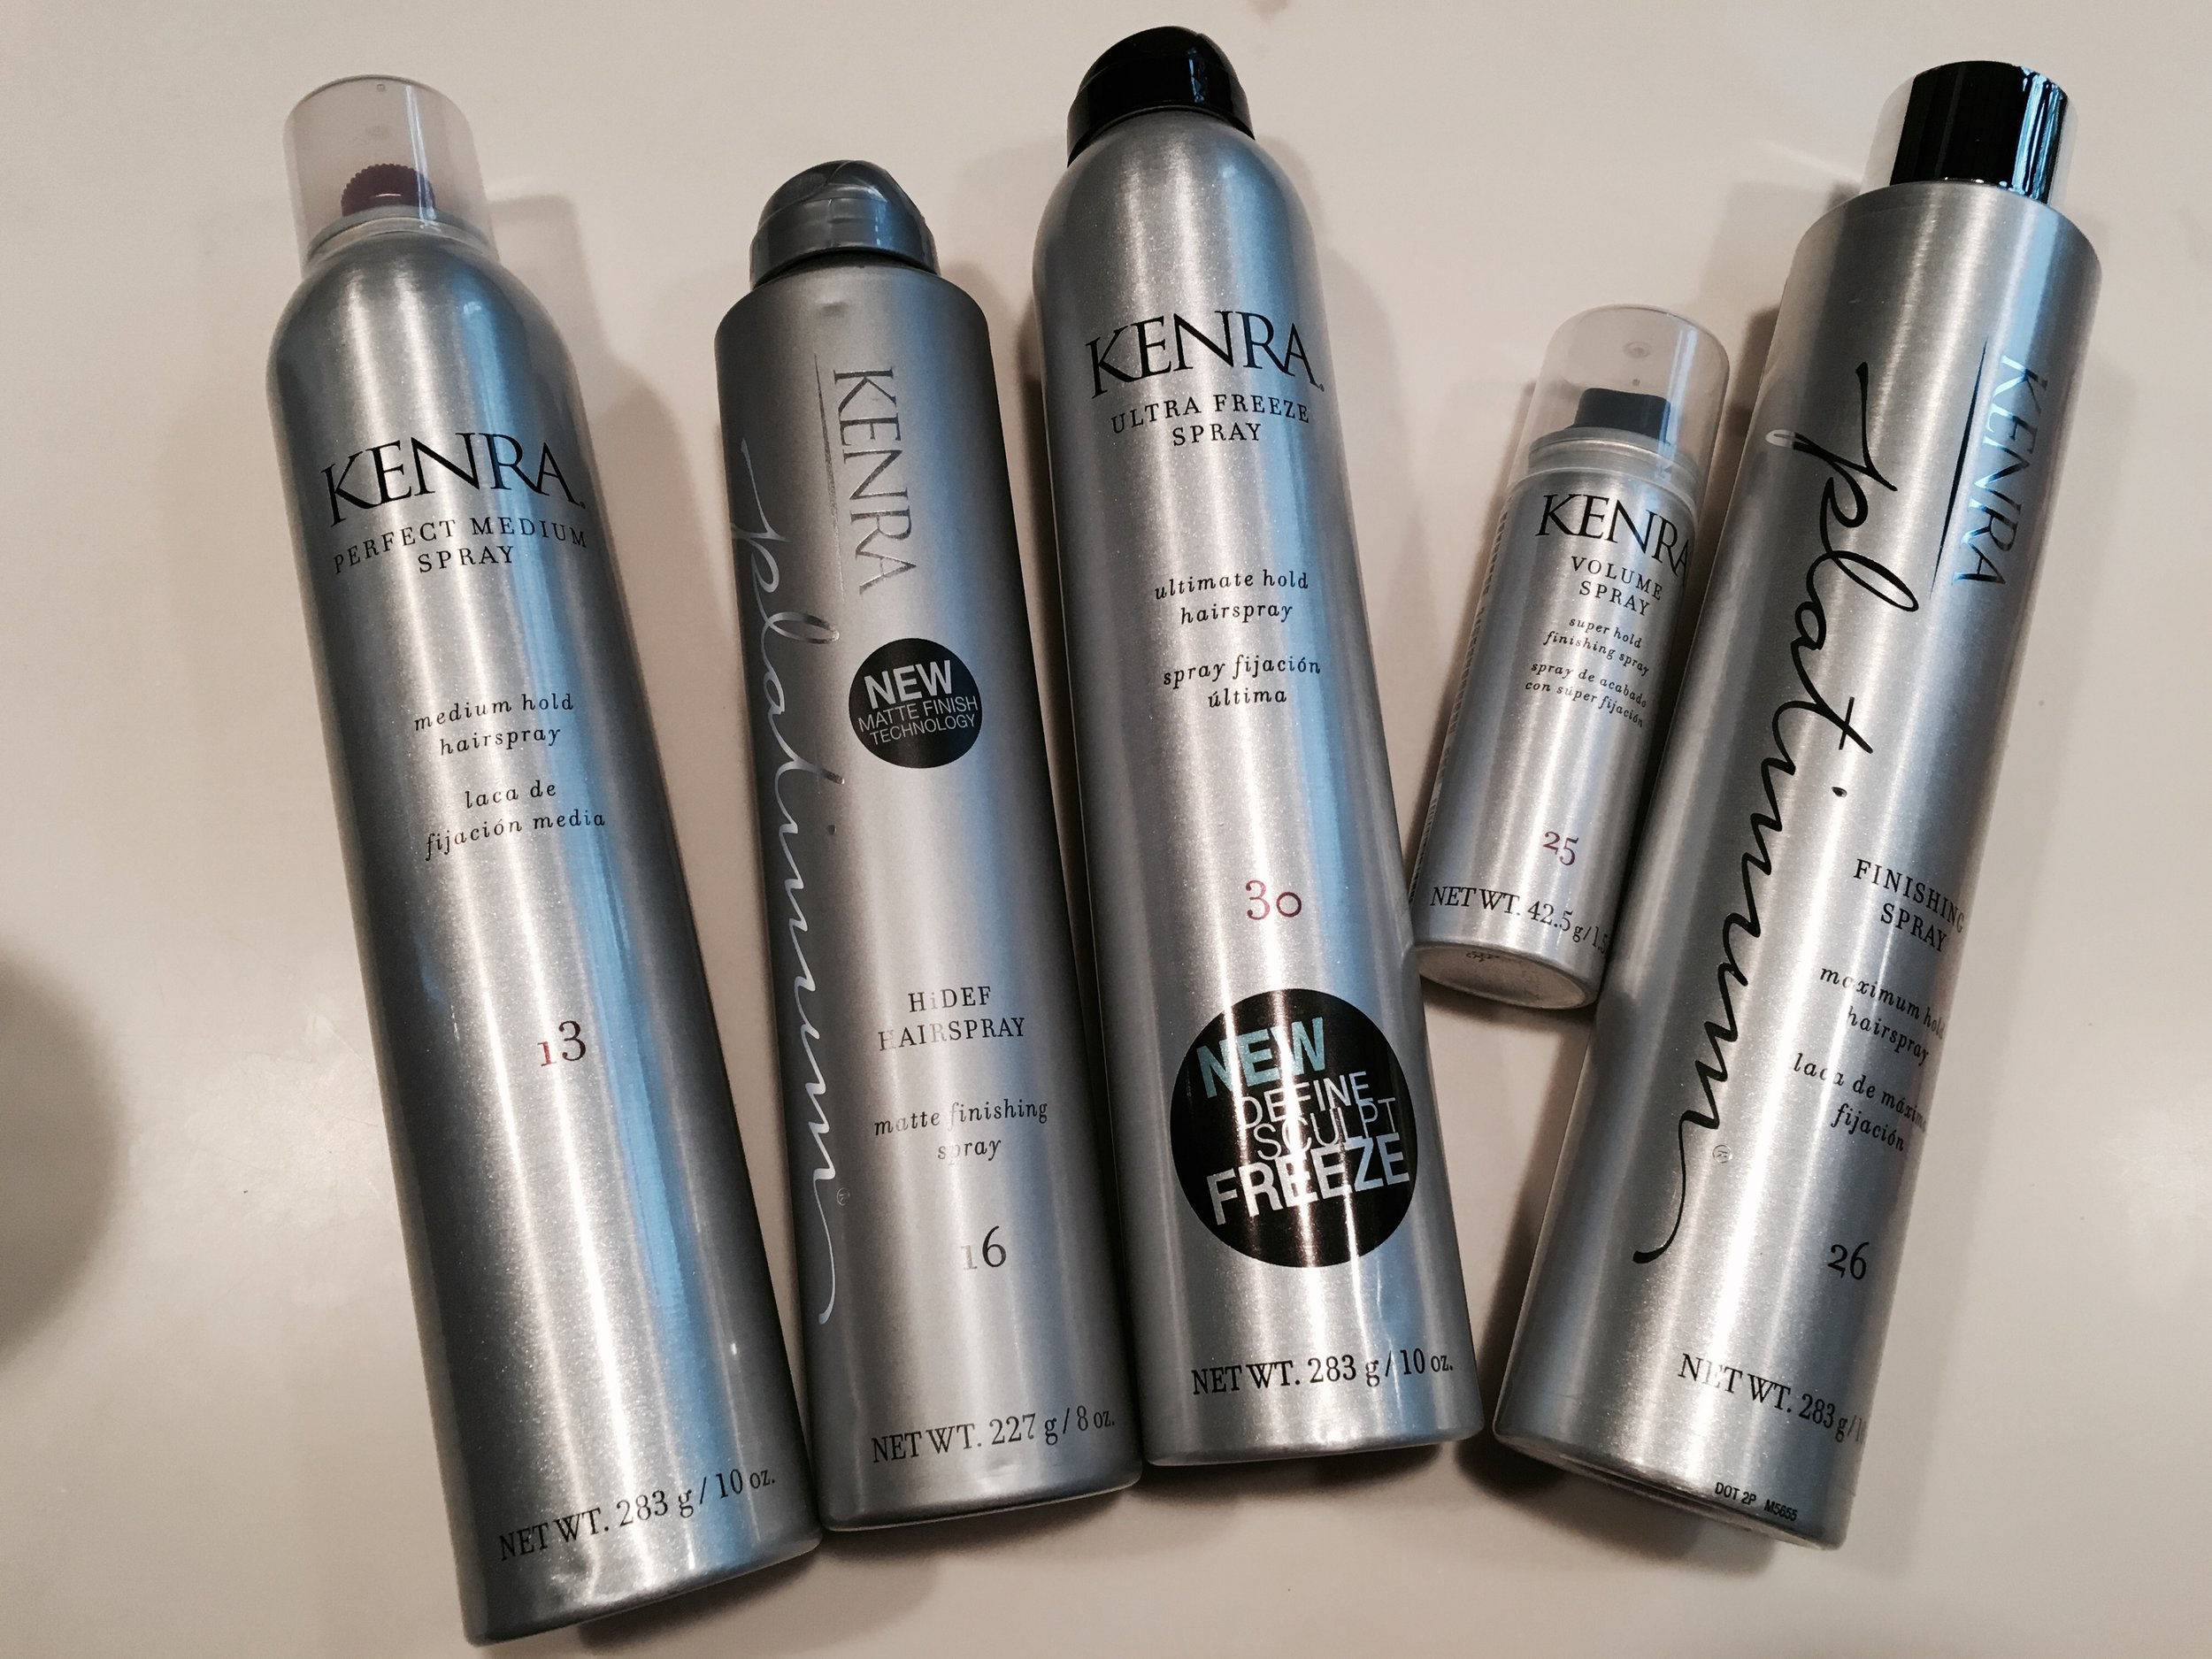 """I have gone through and tried each of these products with a handful of different hairstyles and I have to say they all serve the purpose they say they do! The scents, the lightweight application, and the amazing hold of these   Kenra Professional   products is amazing and I am so in love with them that I have already recommended them to a bunch of my beauty loving friends!             About the Product      Kenra Perfect Medium Spray 13   Perfect Medium Spray 13 combines styling control with a touchable, brush-through hold. This medium hold spray is fast-drying and finishes with a high shine. - Provides styling control without stiffness - Fast-drying formulation for touchable, moveable, brush-through hold - Finishes with high shine """"It's amazing for working with the style, for a flexible finish, and to help with static and fly aways."""" ~Laken Rose, Director of Education, Kenra Professional     Kenra Platinum HiDEF Hairspray 16   HiDEF Hairspray 16 is a light-defusing finishing spray that holds tousled, undone styles with a matte, flake-free finish. This brushable, humidity resistant hairspray instantly dries on contact, giving any style an airy, windblown finish. The perfect finishing spray for any textured style. - Diffuses light for a long-lasting matte finishing effect - Controls and sets texture, body and fullness - Delivers the most natural looking hold on undone styles - Ultra fine mist instantly dries on contact """"Love to use this hairspray to lock in a beachy wave look after using Kenra Platinum Dry Texture Spray 6 for an undone, matte finish."""" ~Laken Rose, Director of Education, Kenra Professional     Kenra Volume Spray 25   Volume Spray 25 provides the maximum amount of volume and hold possible. It leaves hair looking natural and shiny while imparting the strength and volume necessary to make any style last all day. - Super hold up to 120 hours - 24 hour high humidity resistance - Wind resistant up to 25 MPH - Flake-free - Fast-drying """"Excellent all around h"""